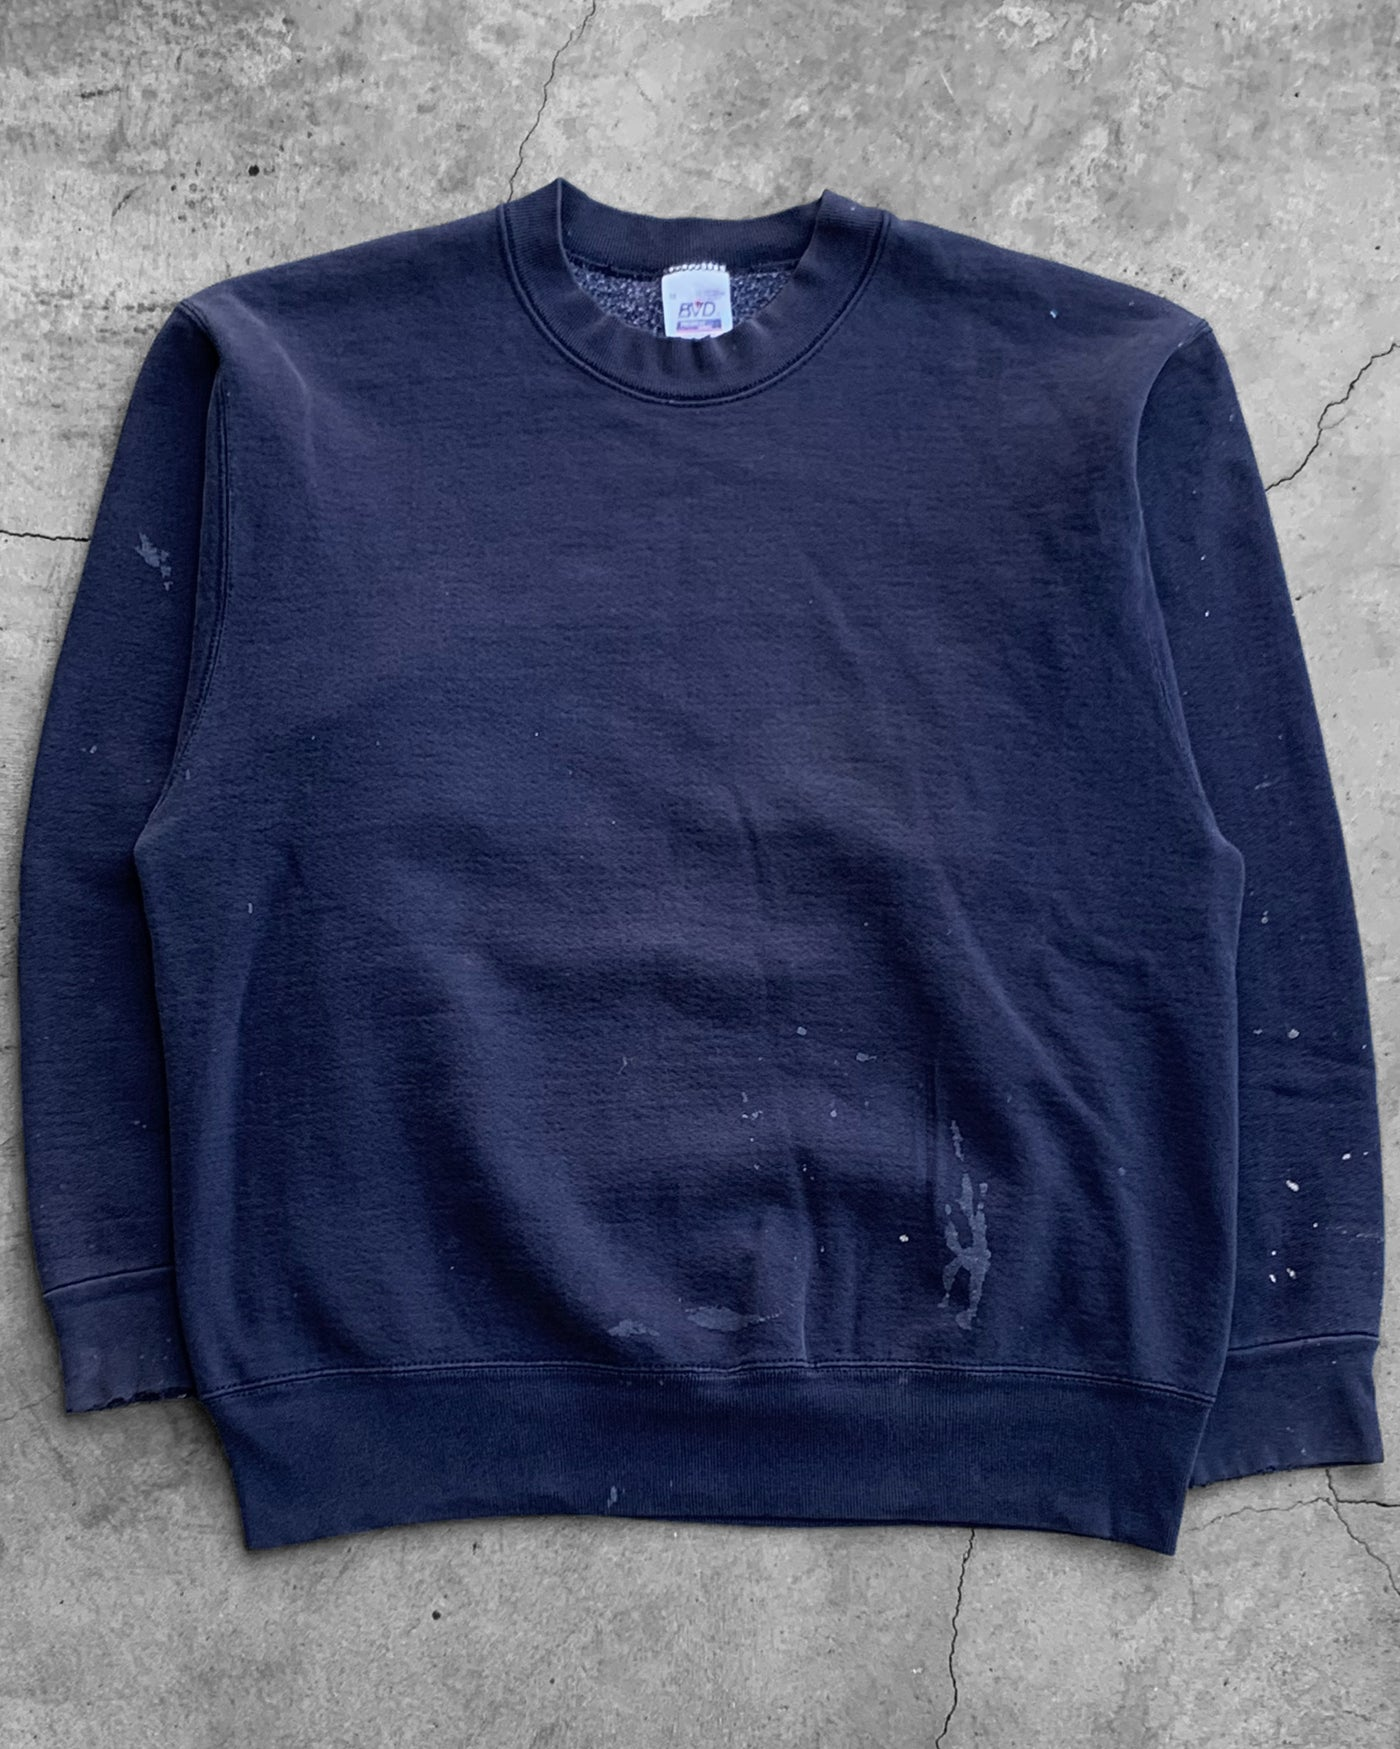 Stained Navy Crewneck Sweater - 1990s